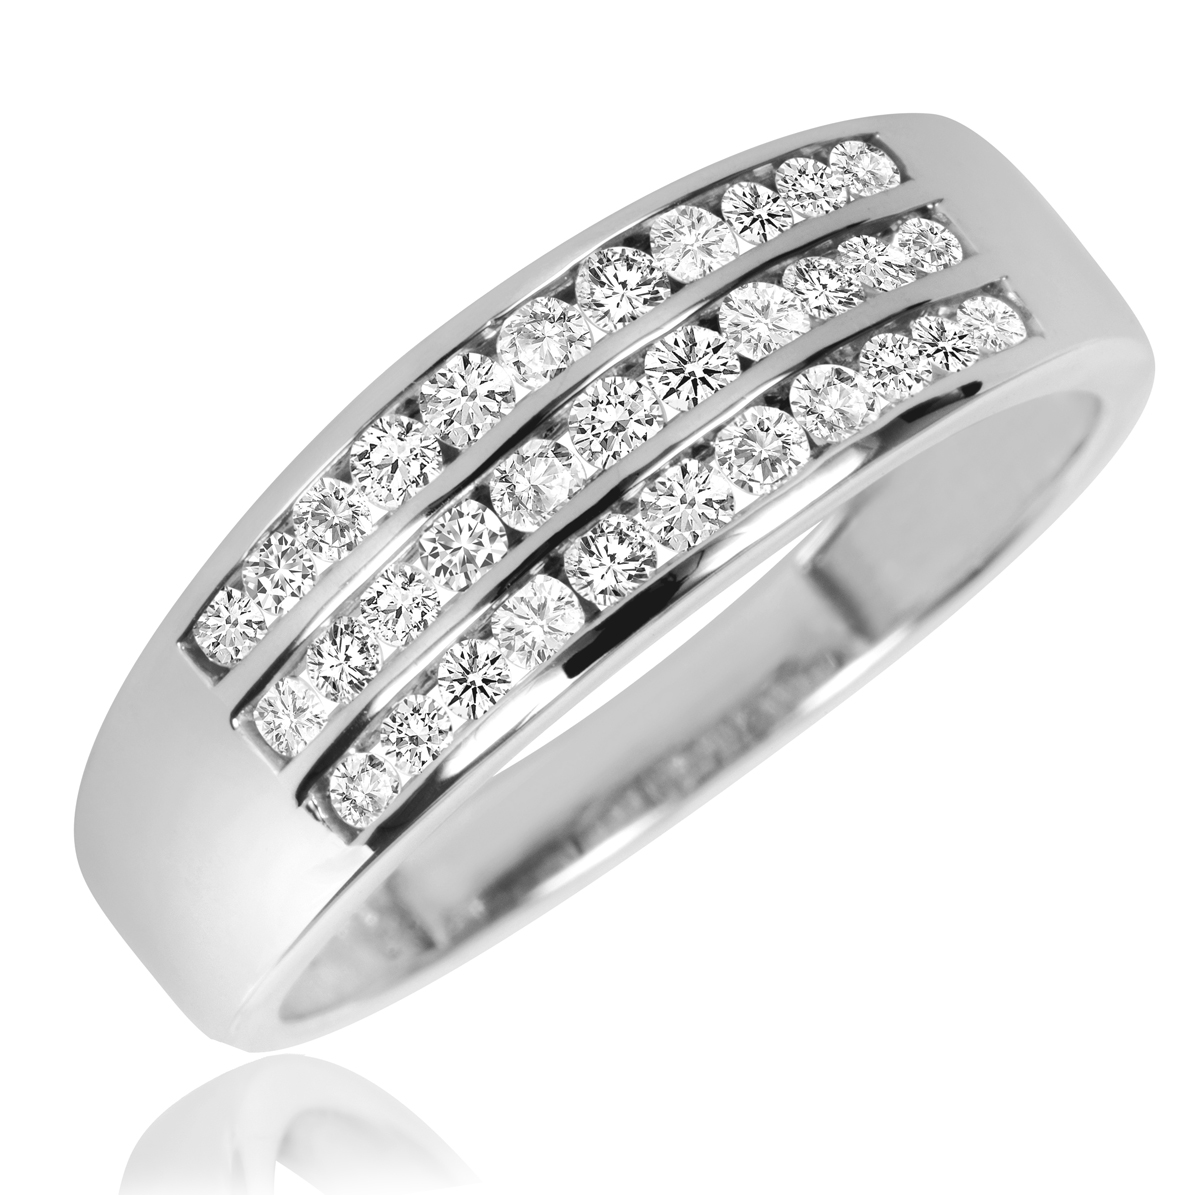 Tw Diamond Ladies Engagement Ring, Wedding Band, Men's Wedding Band  Matching Set 14k White Gold  My Trio Rings  Bt700w14kr100